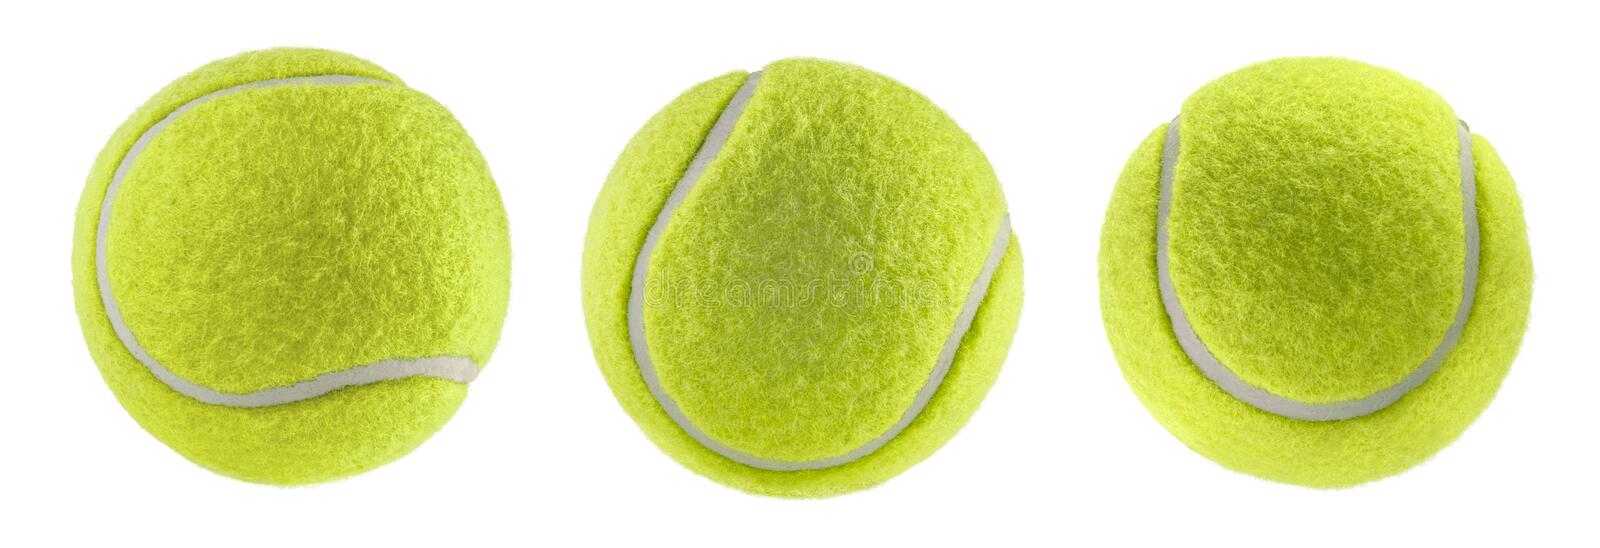 Tennis ball isolated white background - photography stock image